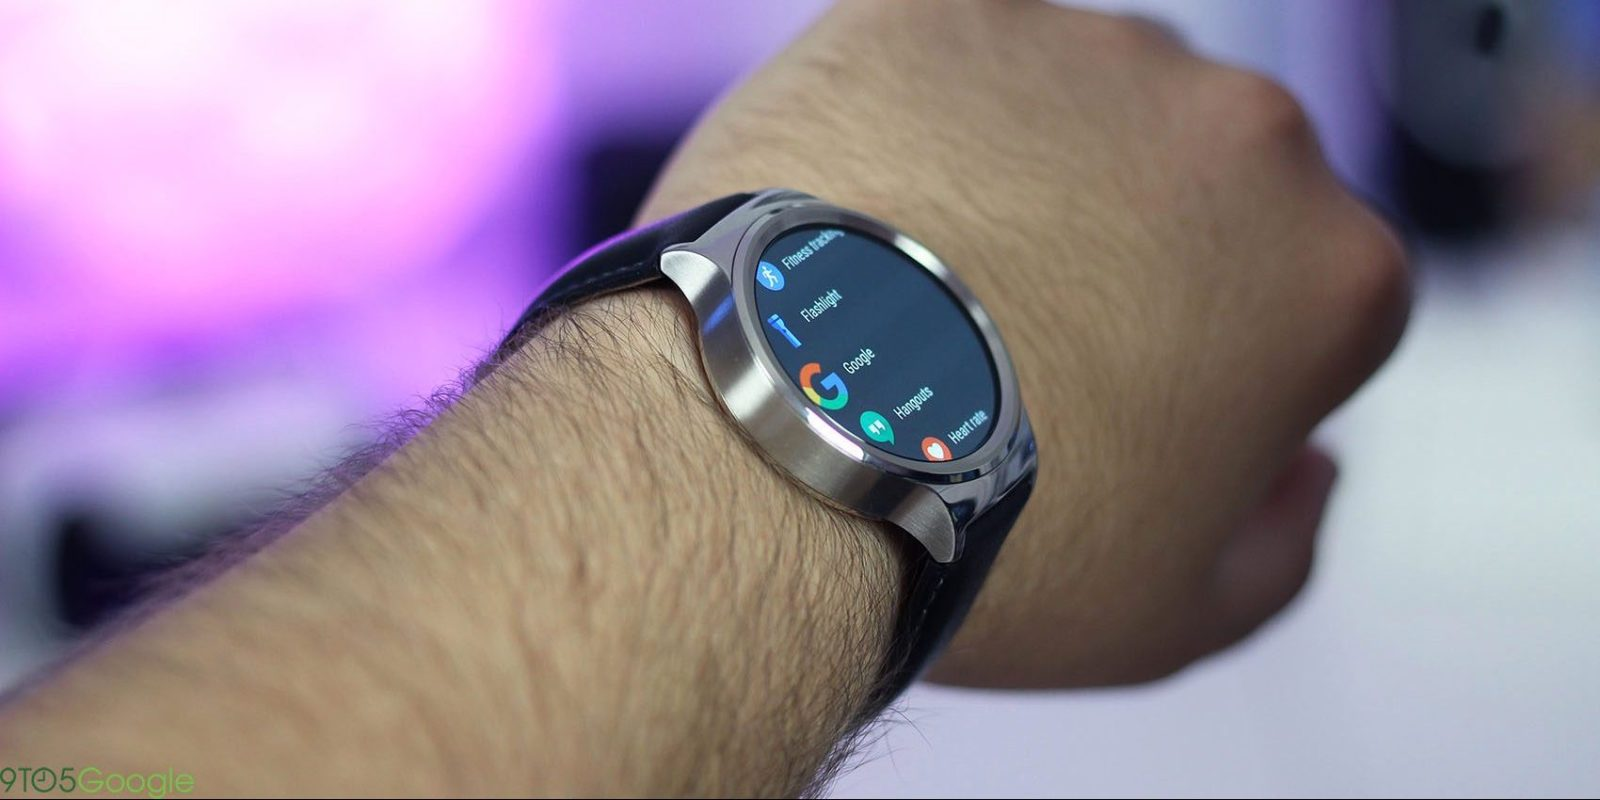 Hands-on: Android Wear 2.0 has a lot more new features than you probably realize